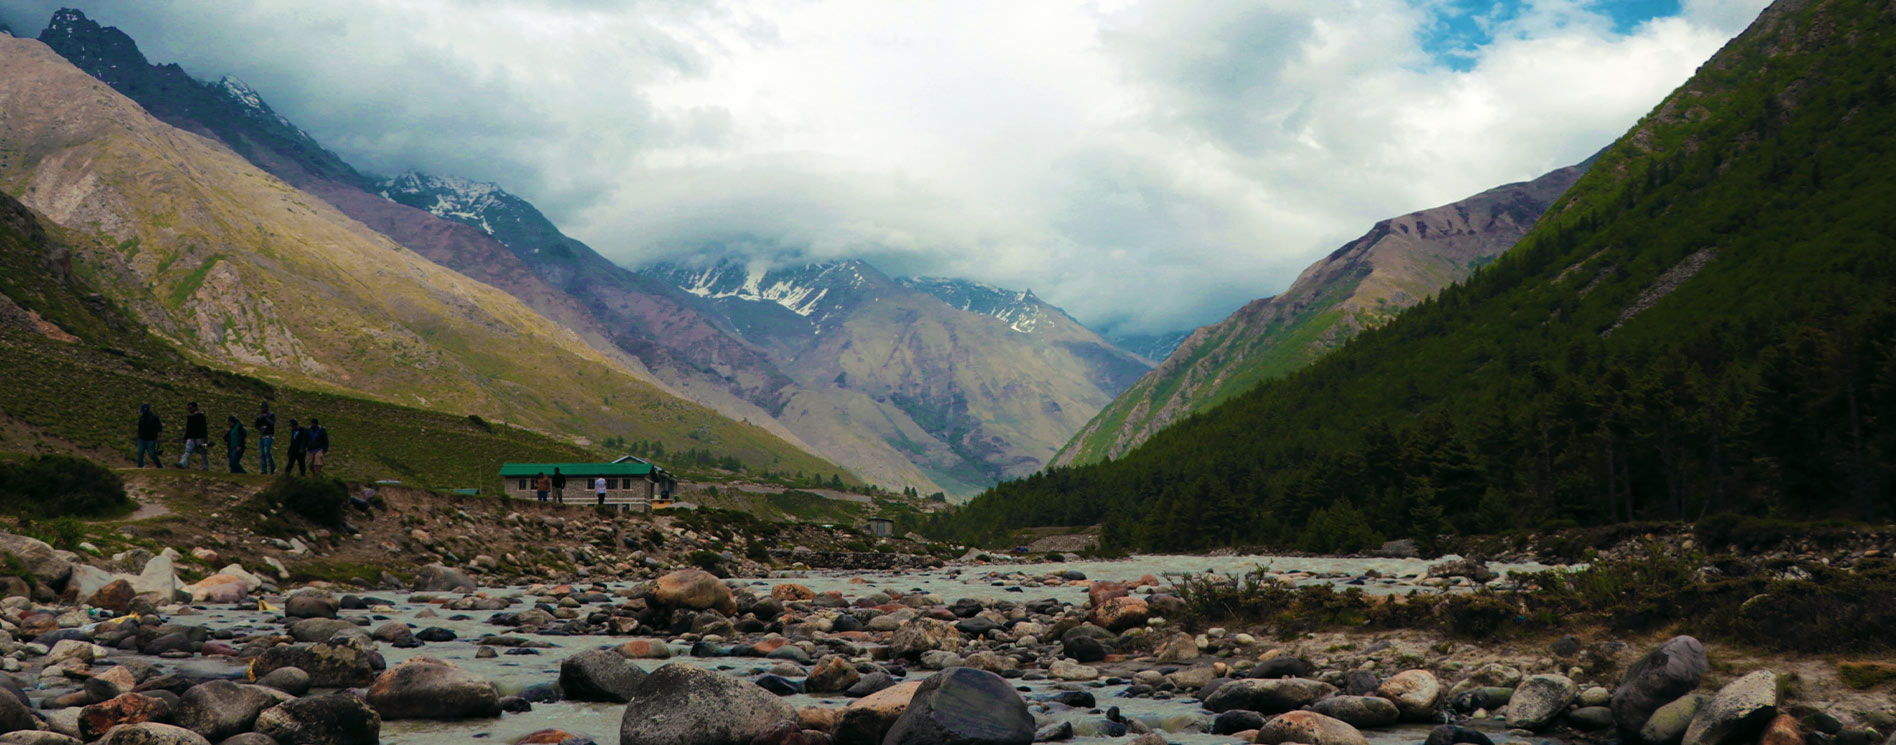 Himachal Package (10 Nights / 11 Days)